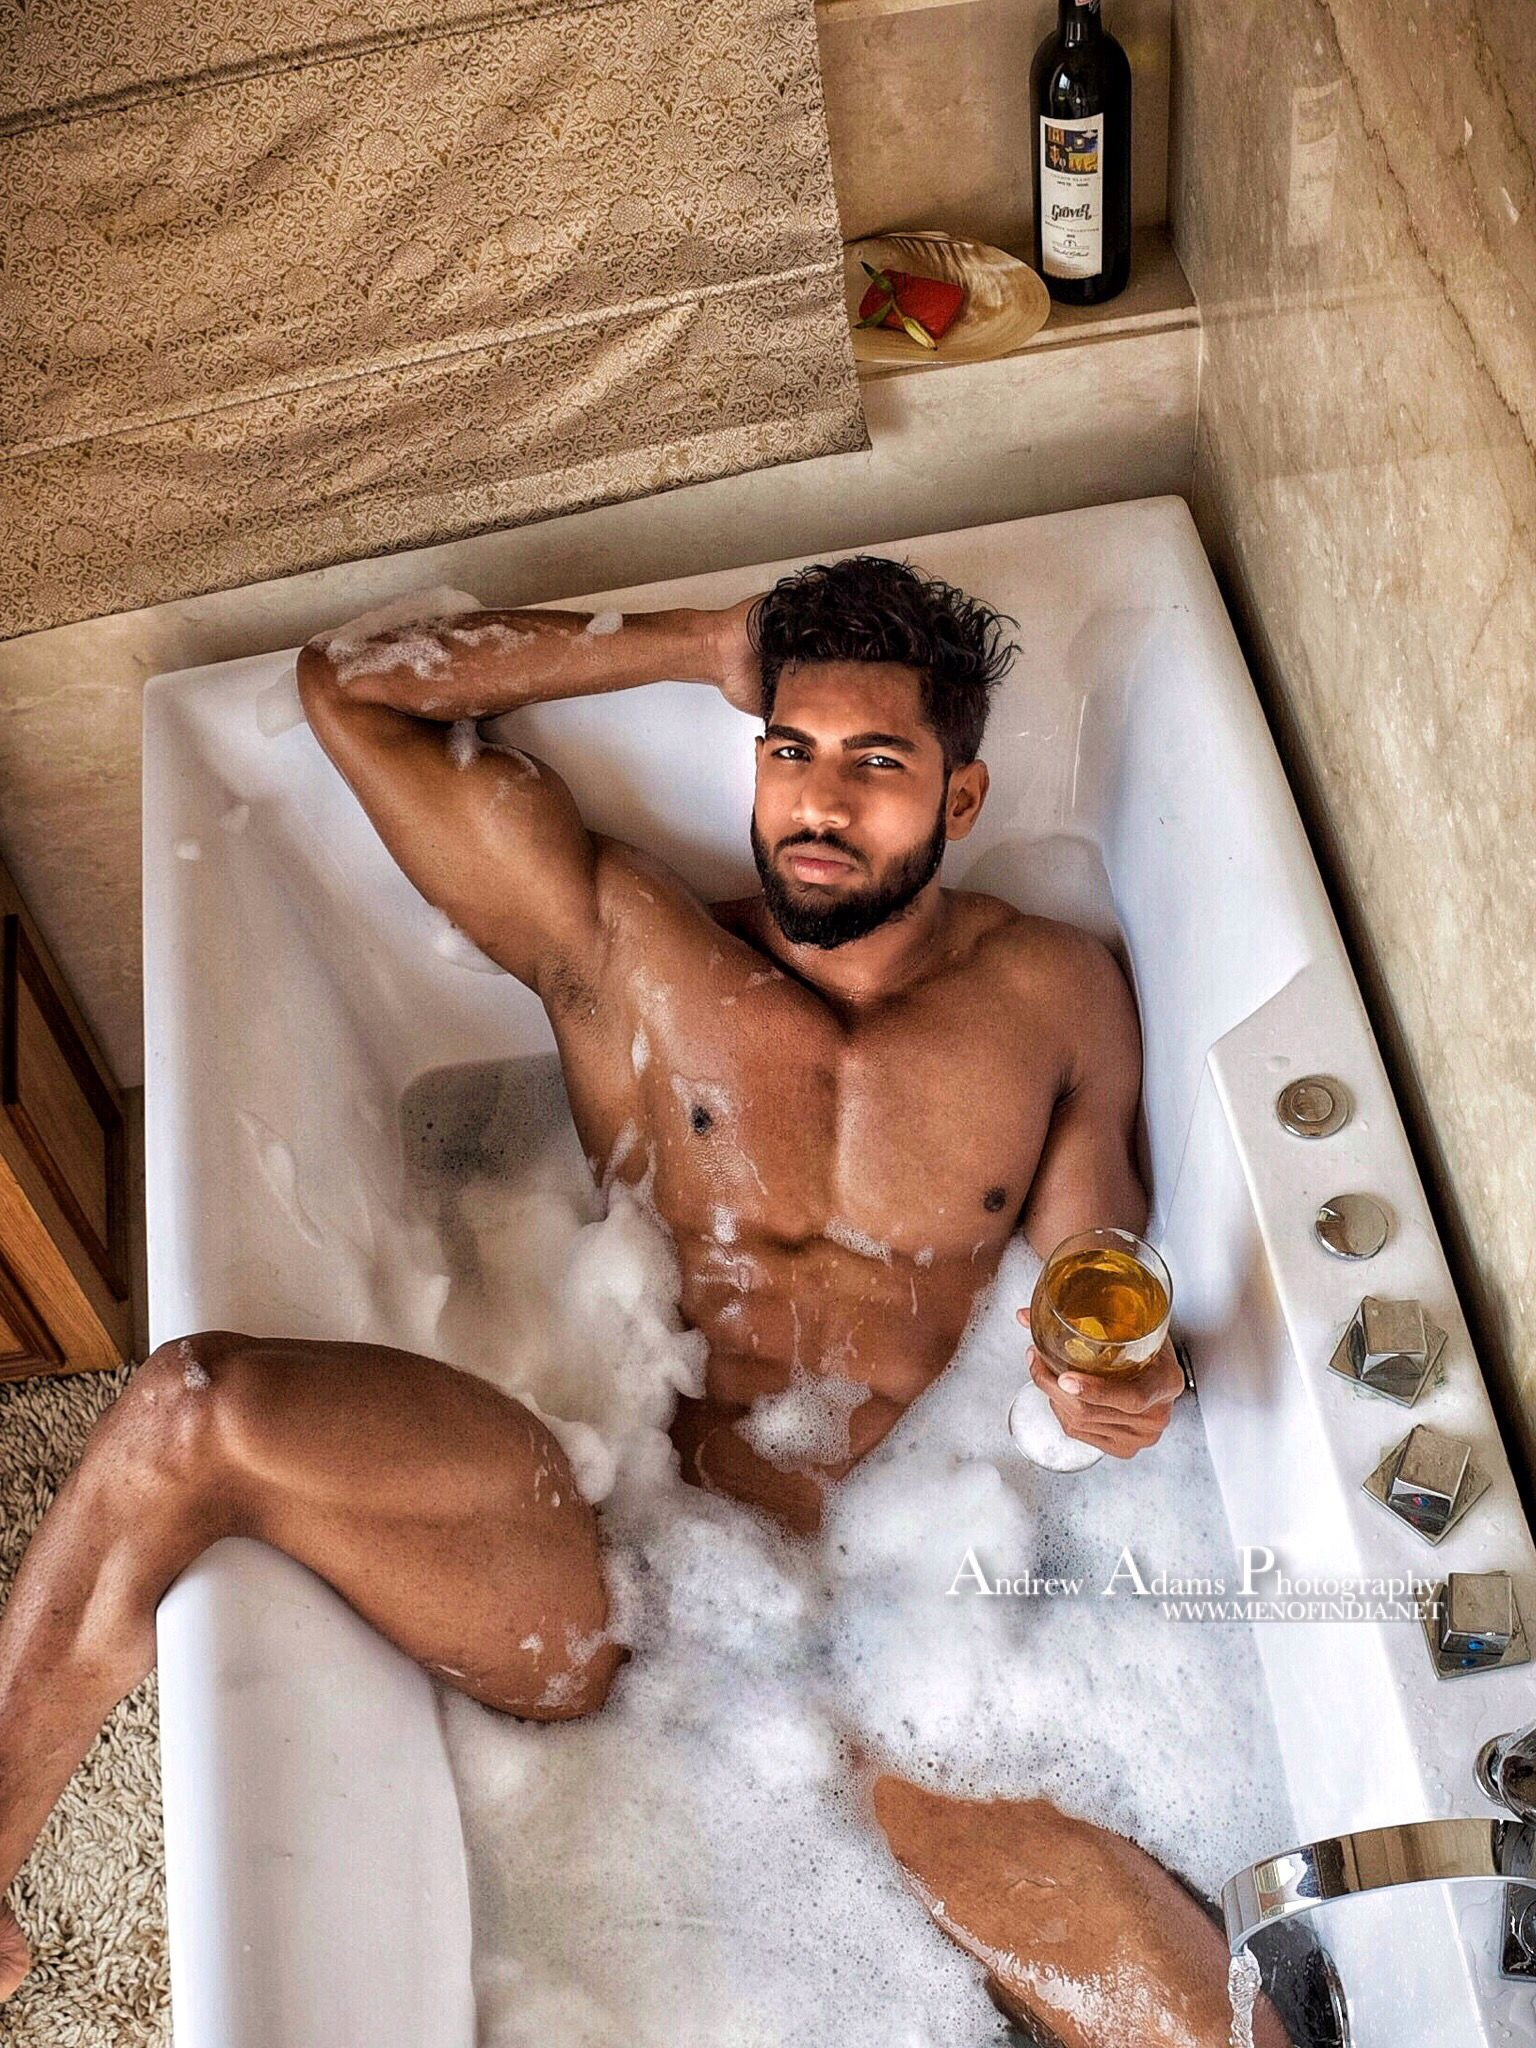 jordan's day at the spa - men of india | men's hairy legs fetish